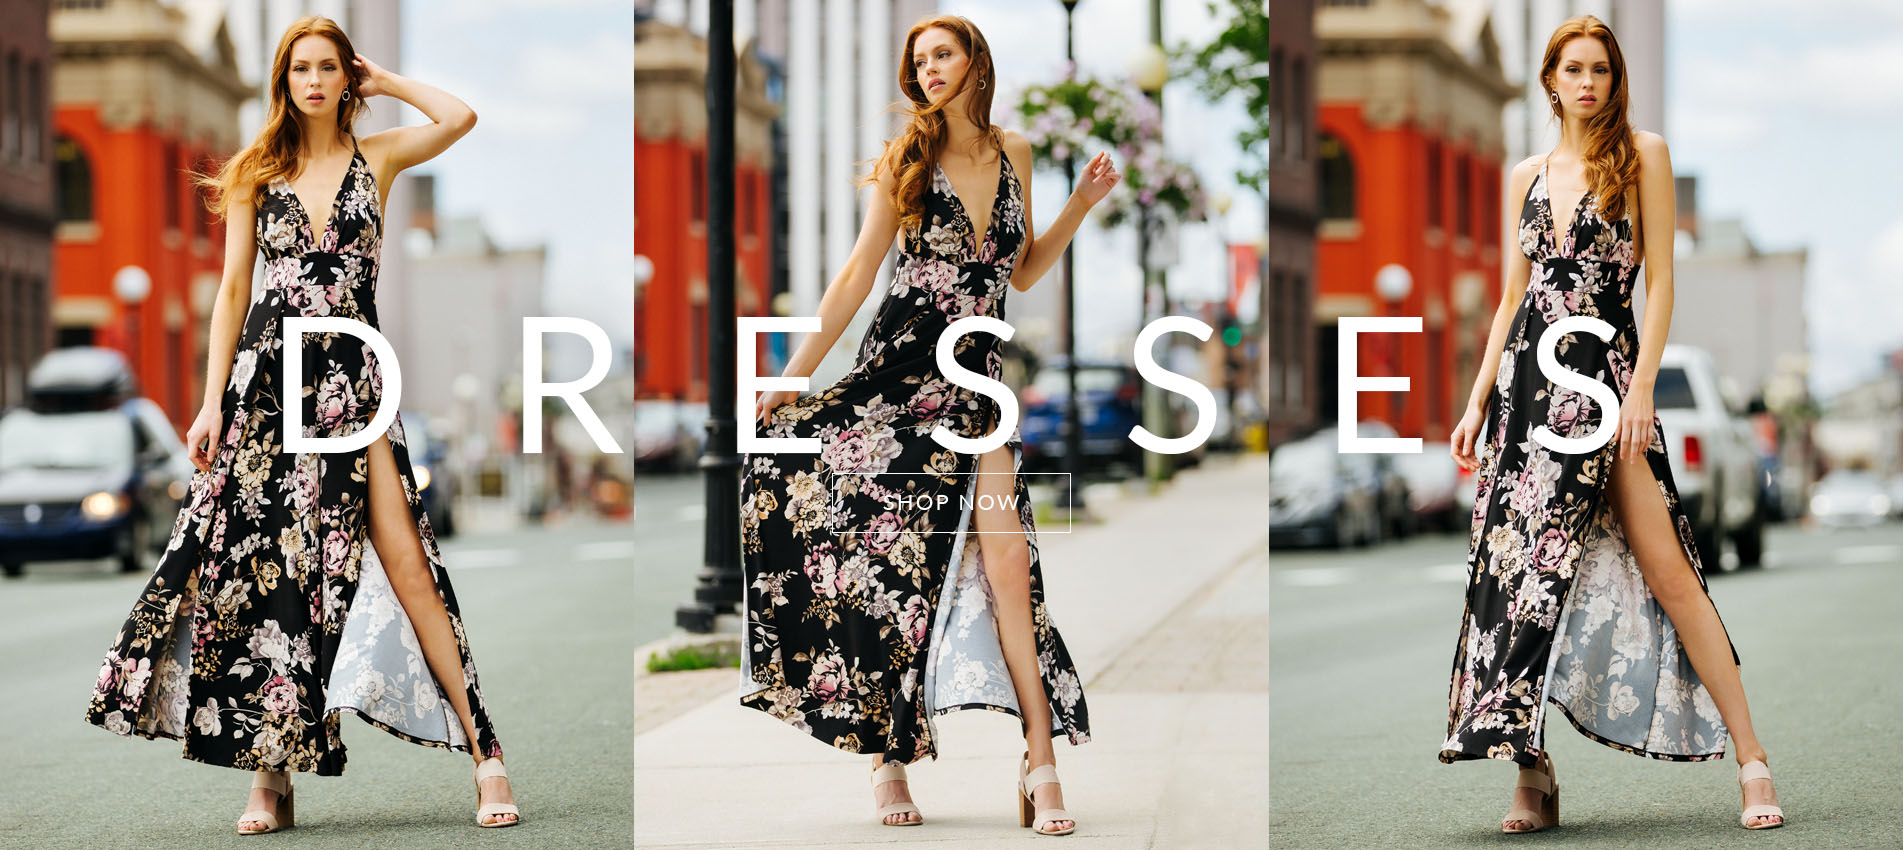 Dresses: our latest Styles just landed. Shop now